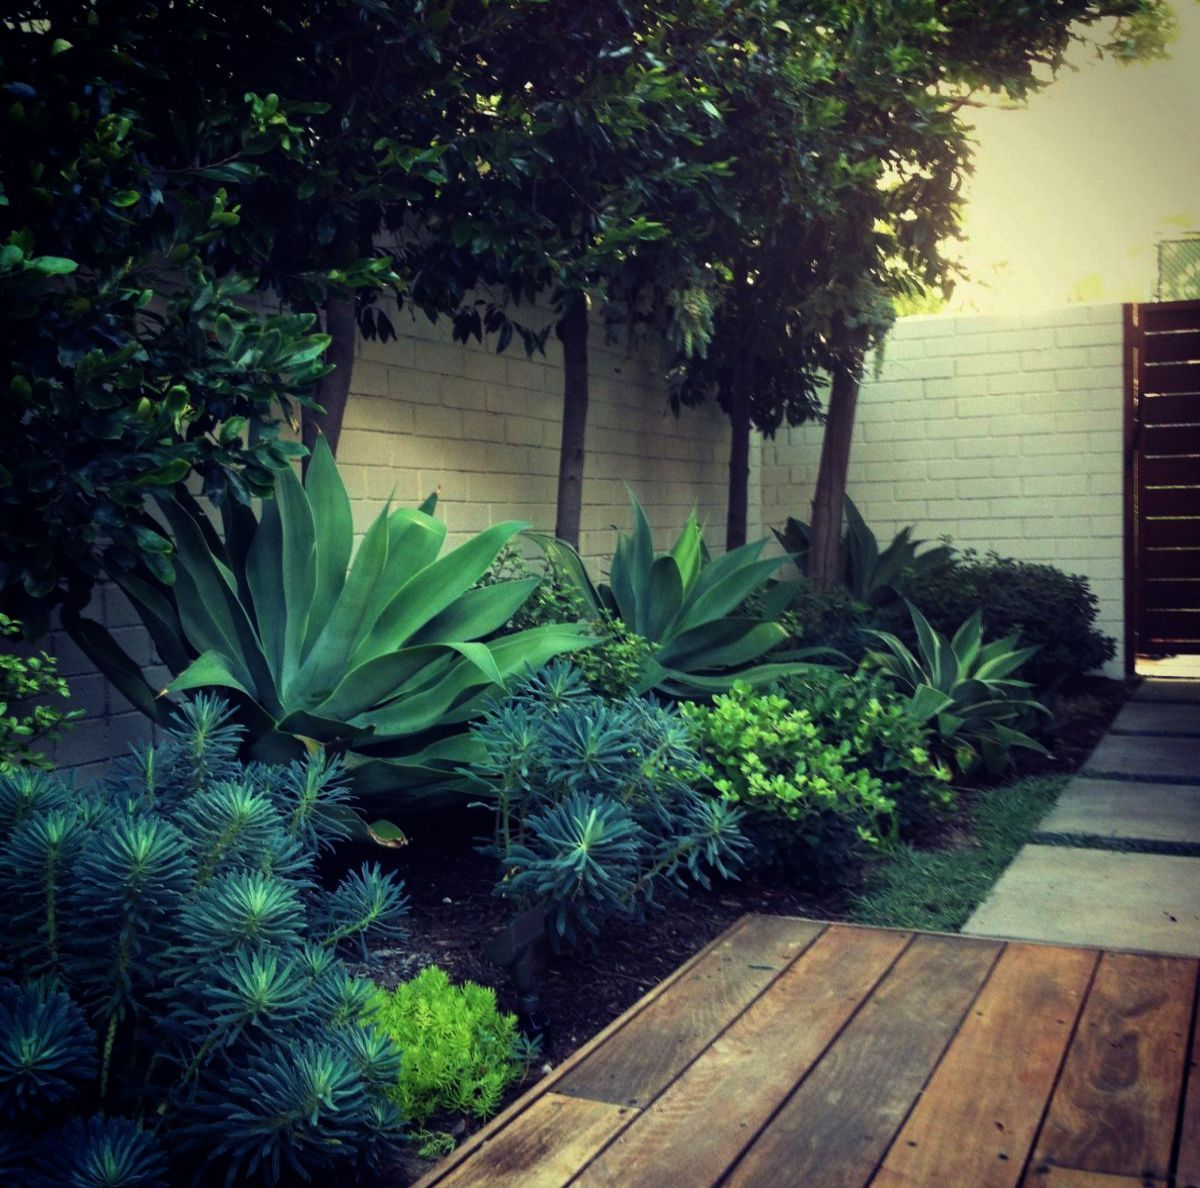 Pin By Lorena Carballo On Gardening In 2020 Planting Design Plan Garden Design Plans Planting Plan